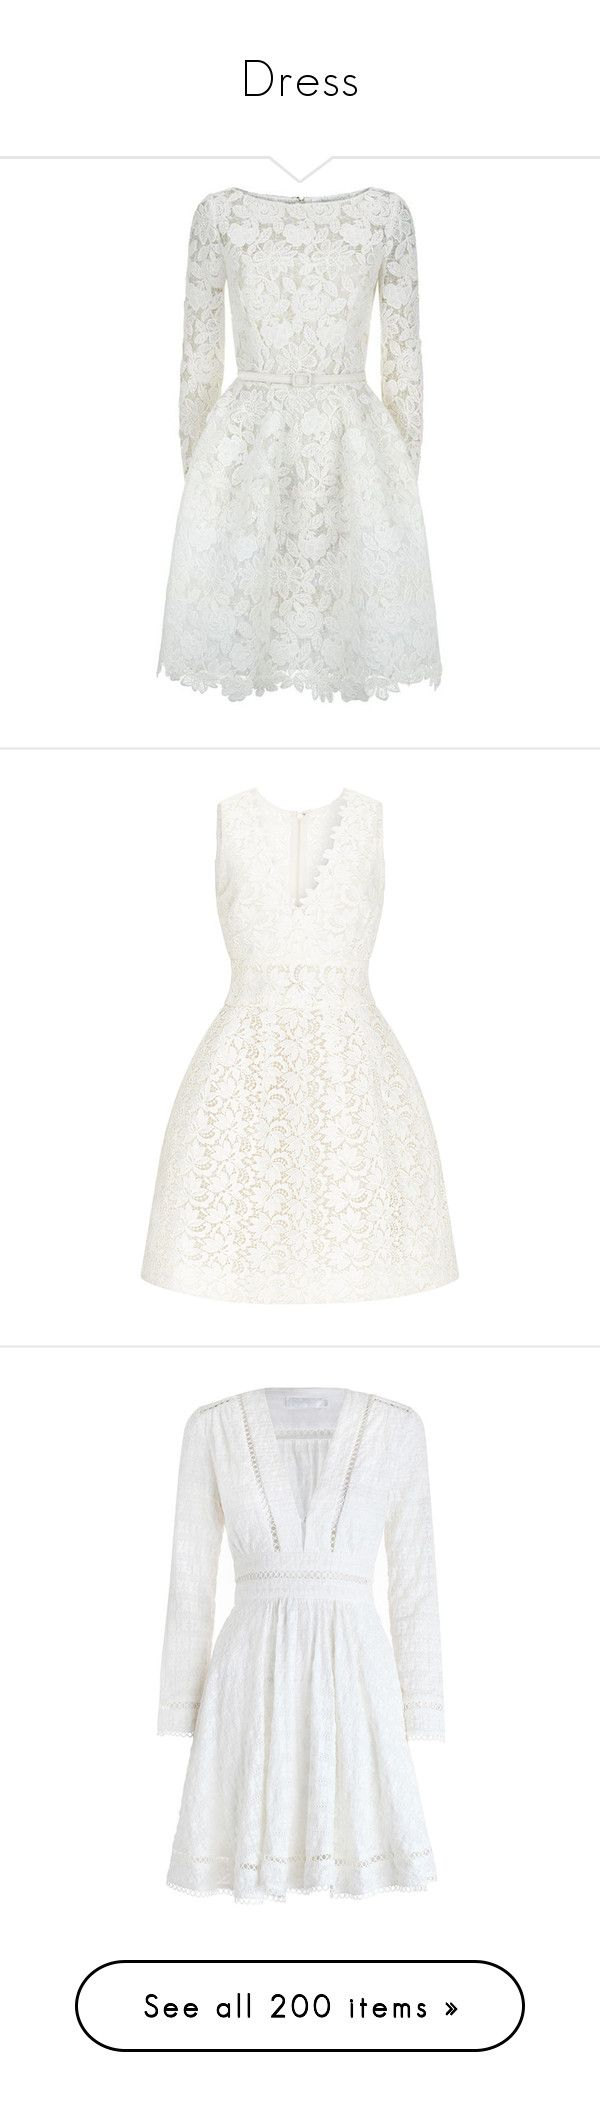 """Dress"" by alejaborrayo ❤ liked on Polyvore featuring dresses, vestidos, short dresses, oscar de la renta, long sleeve cocktail dresses, white lace cocktail dress, short lace dress, white mini dress, short white dresses and white dress"